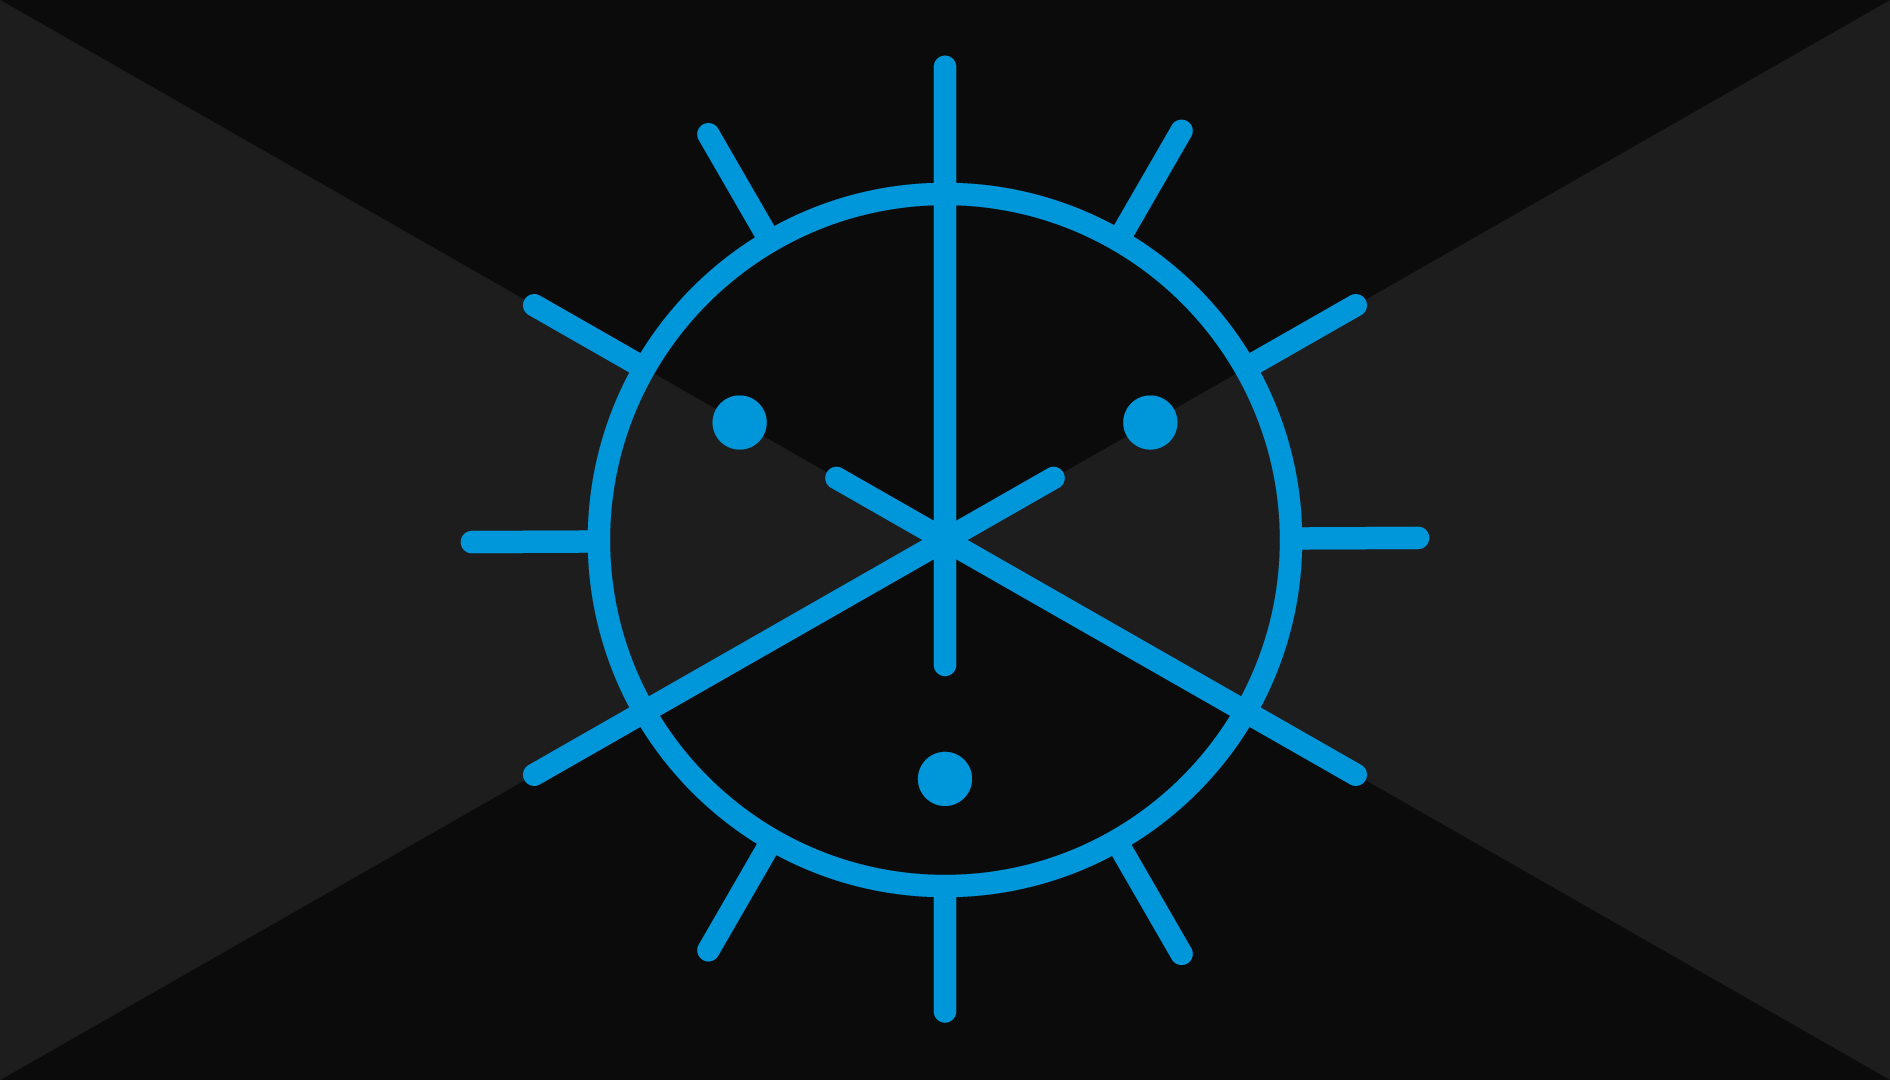 The Crest of Syntheticism: A circle of radioactive blue on a black background, trifurcated by three strokes that cross to form a tri-point in the center. Three round stars lie just off the ends of the points. The circumference of the circle is surrounded by twelve strokes spaced evenly around.